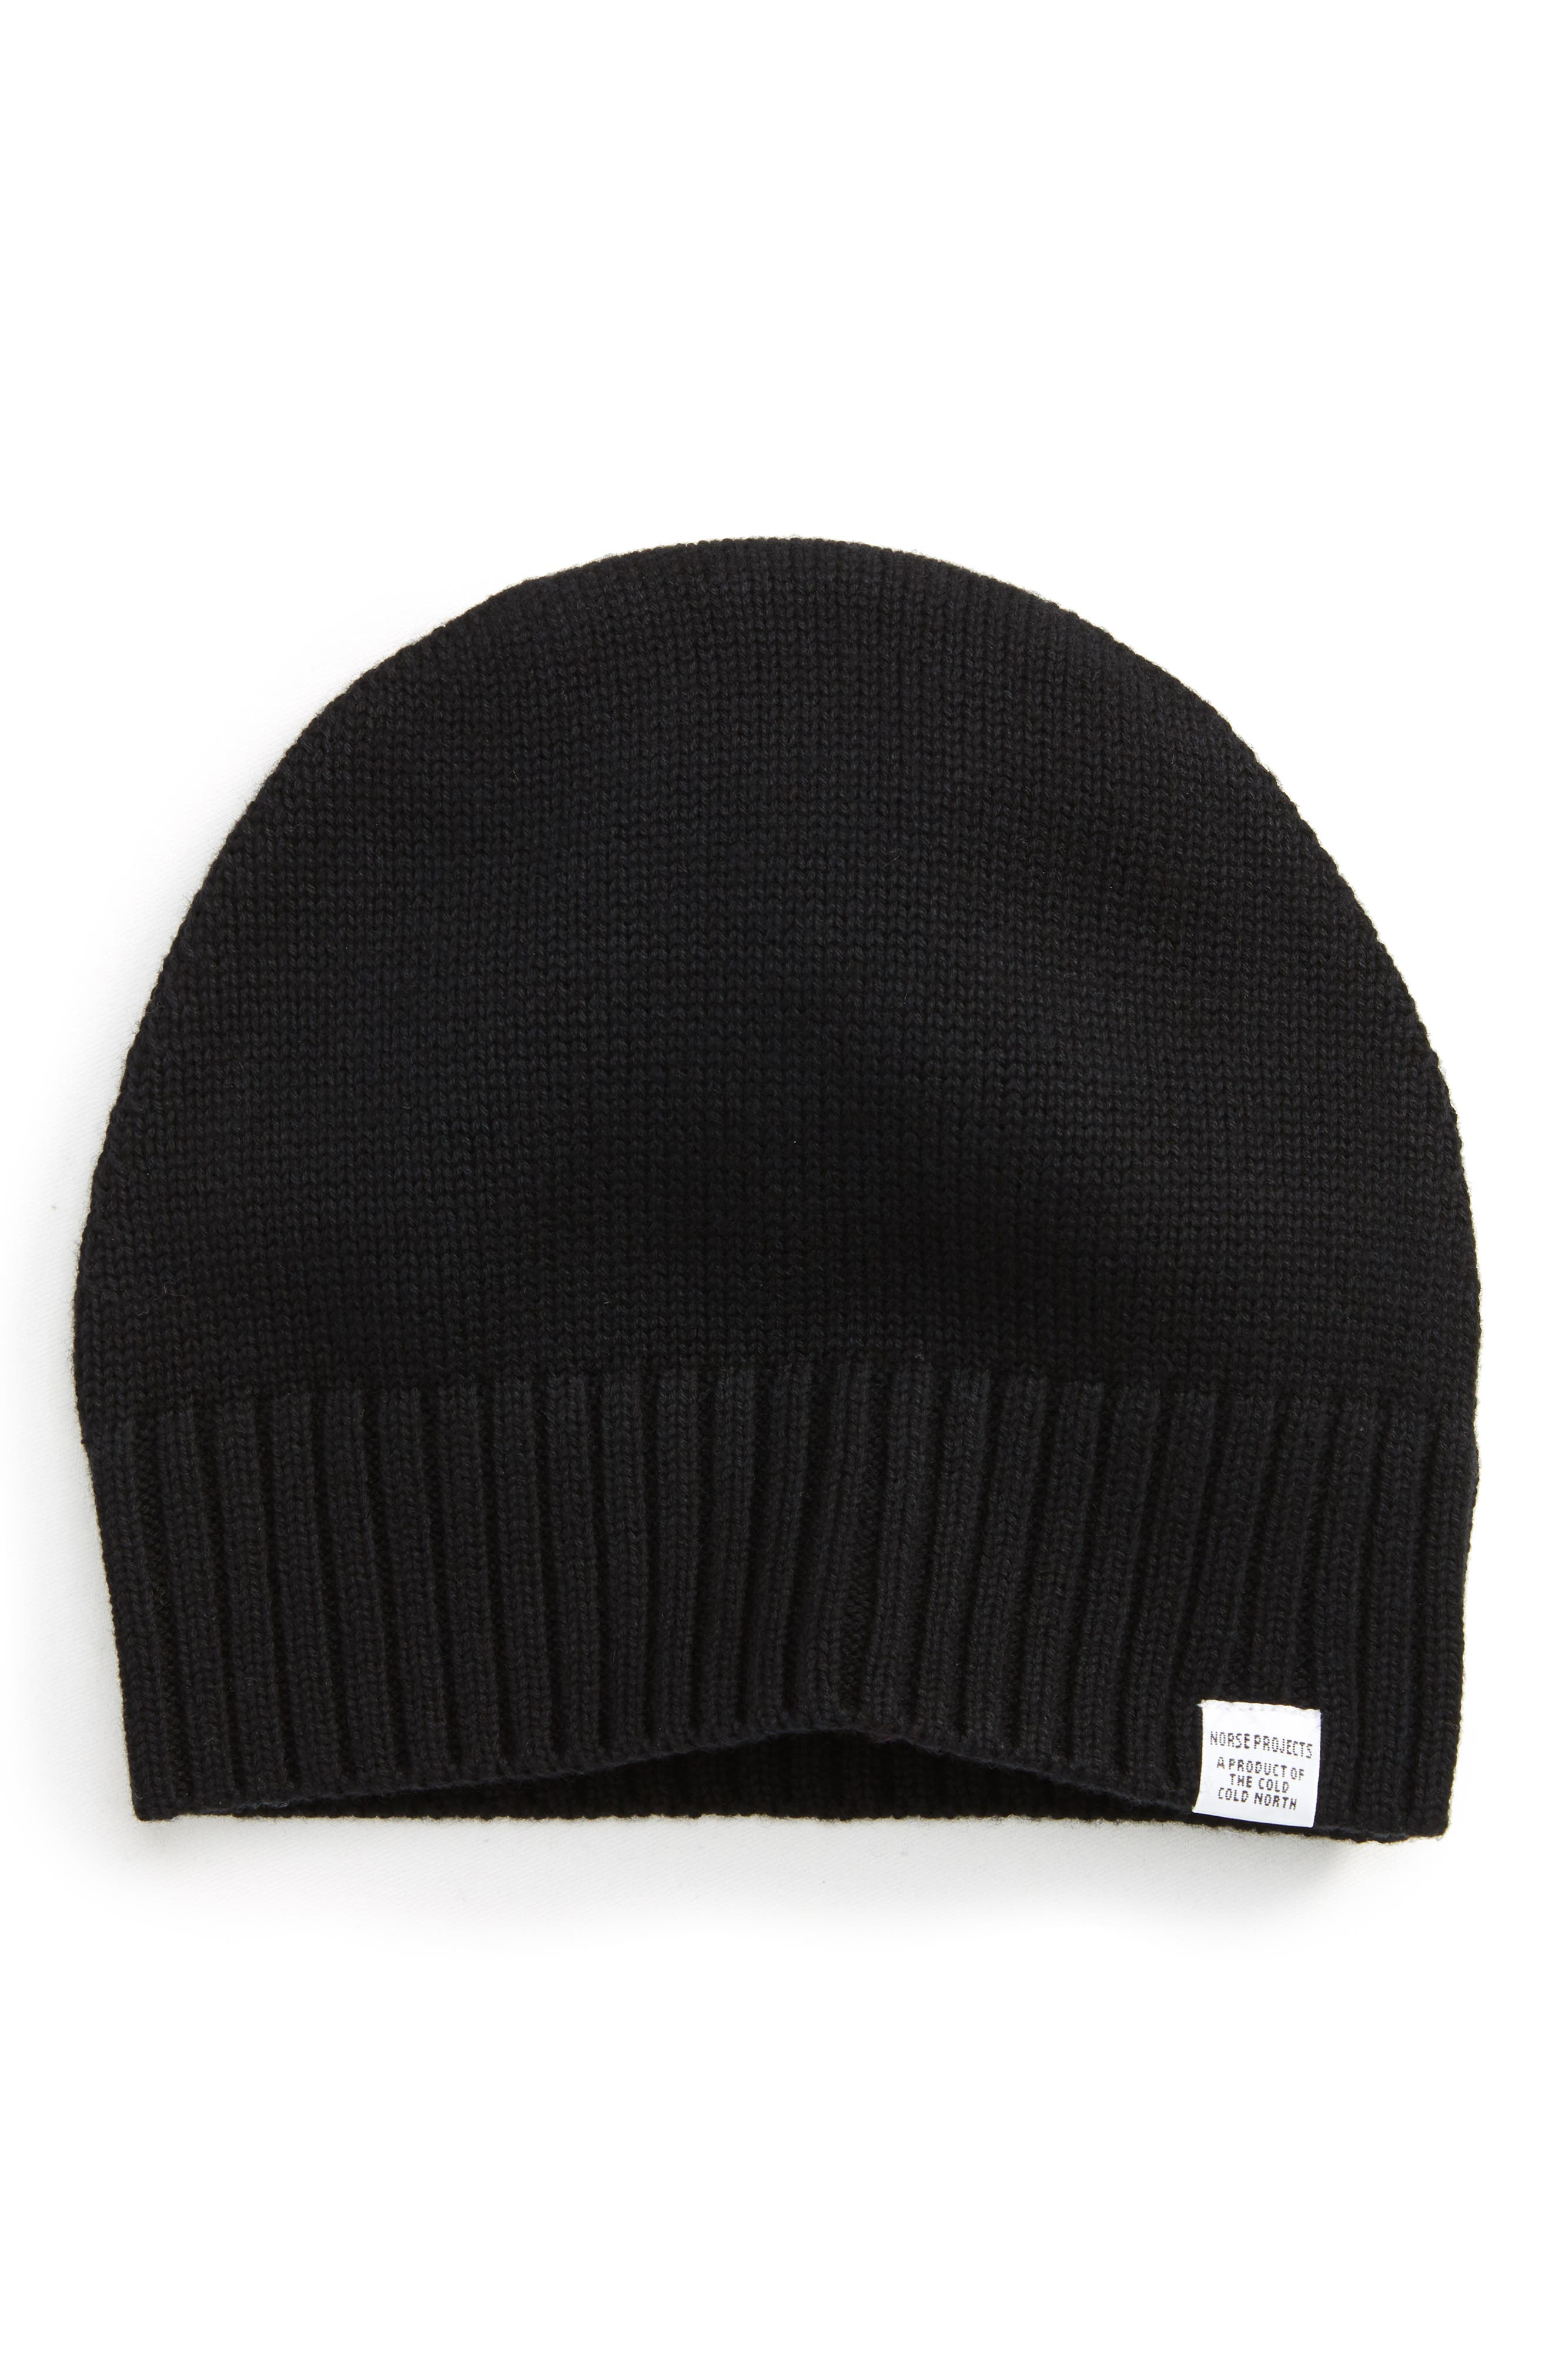 Alternate Image 1 Selected - Norse Project Knit Cap